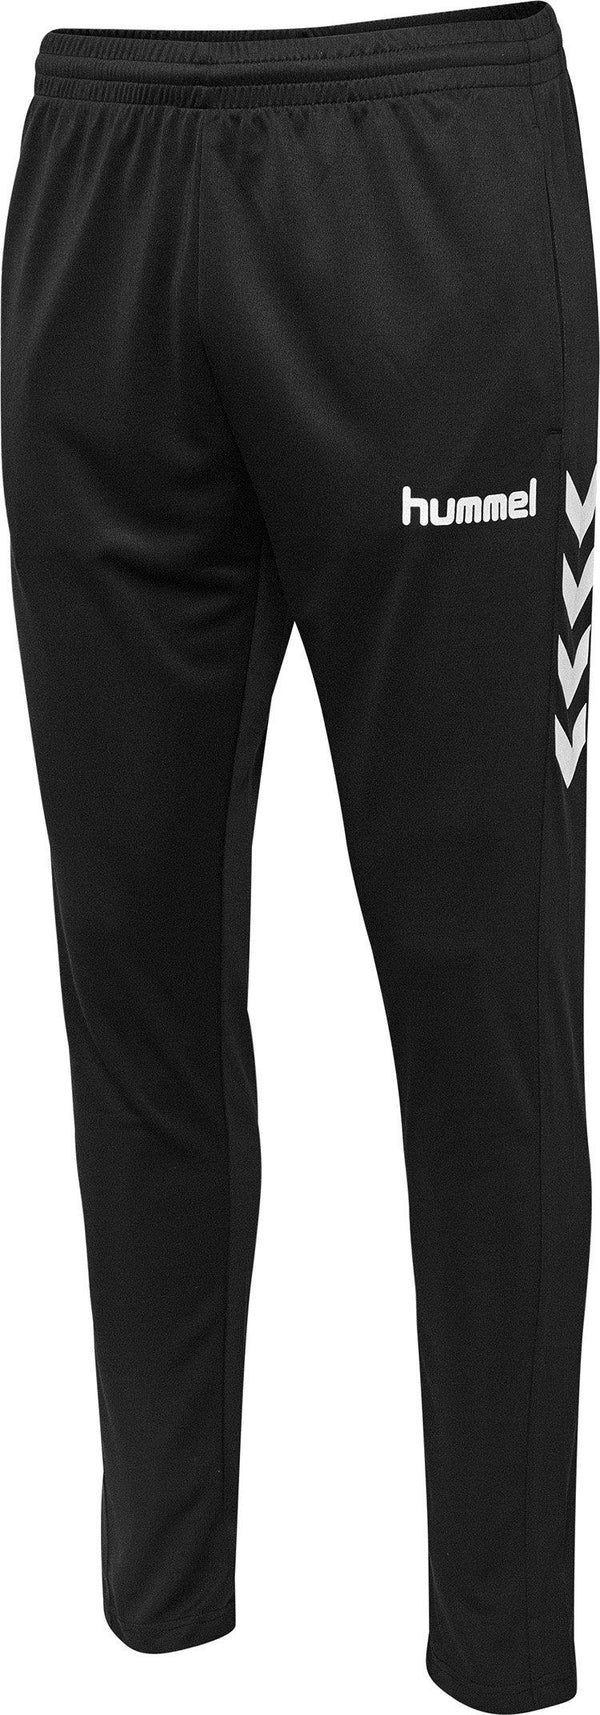 hummel Core Training Poly Pants-Soccer Command